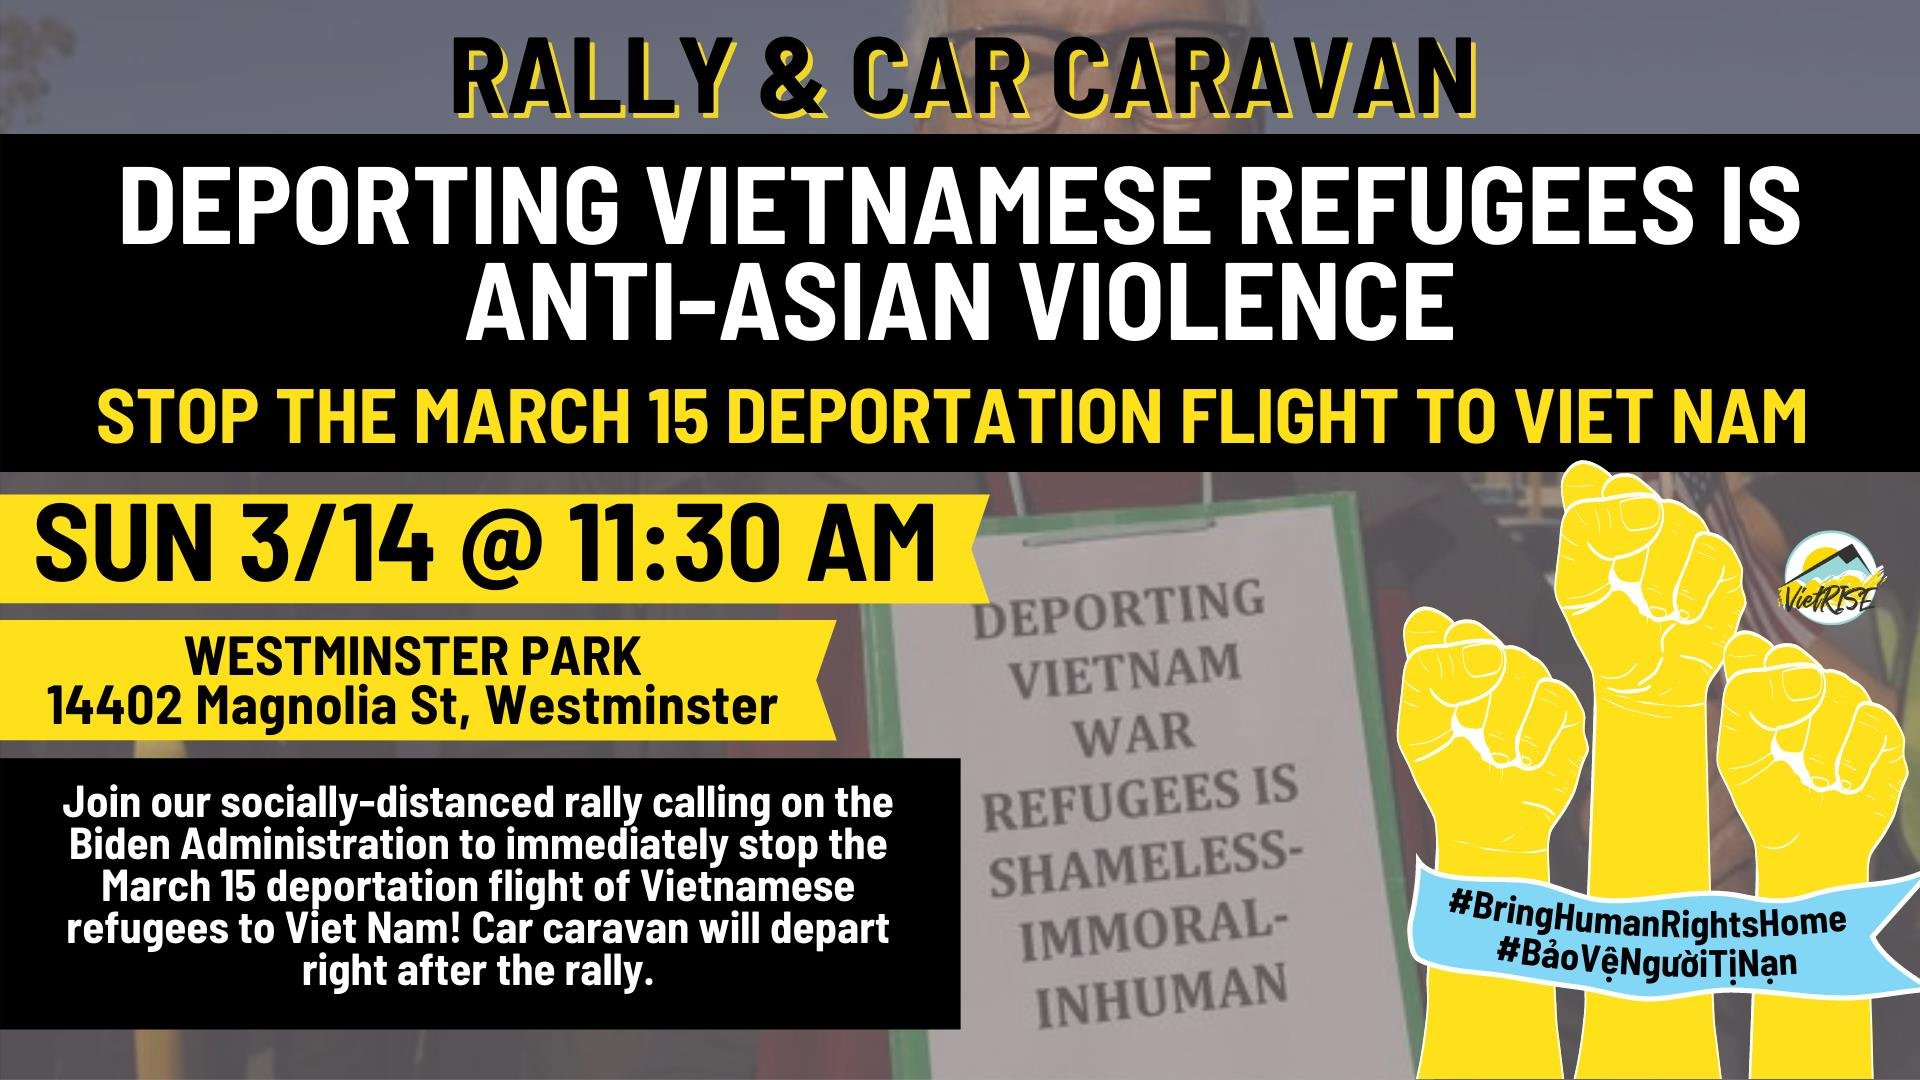 Vietnamese and Asian American Organizations Across the Country Denounce Upcoming March 15 Deportation Flight to Viet Nam, Say Deporting Refugees is Anti-Asian Violence